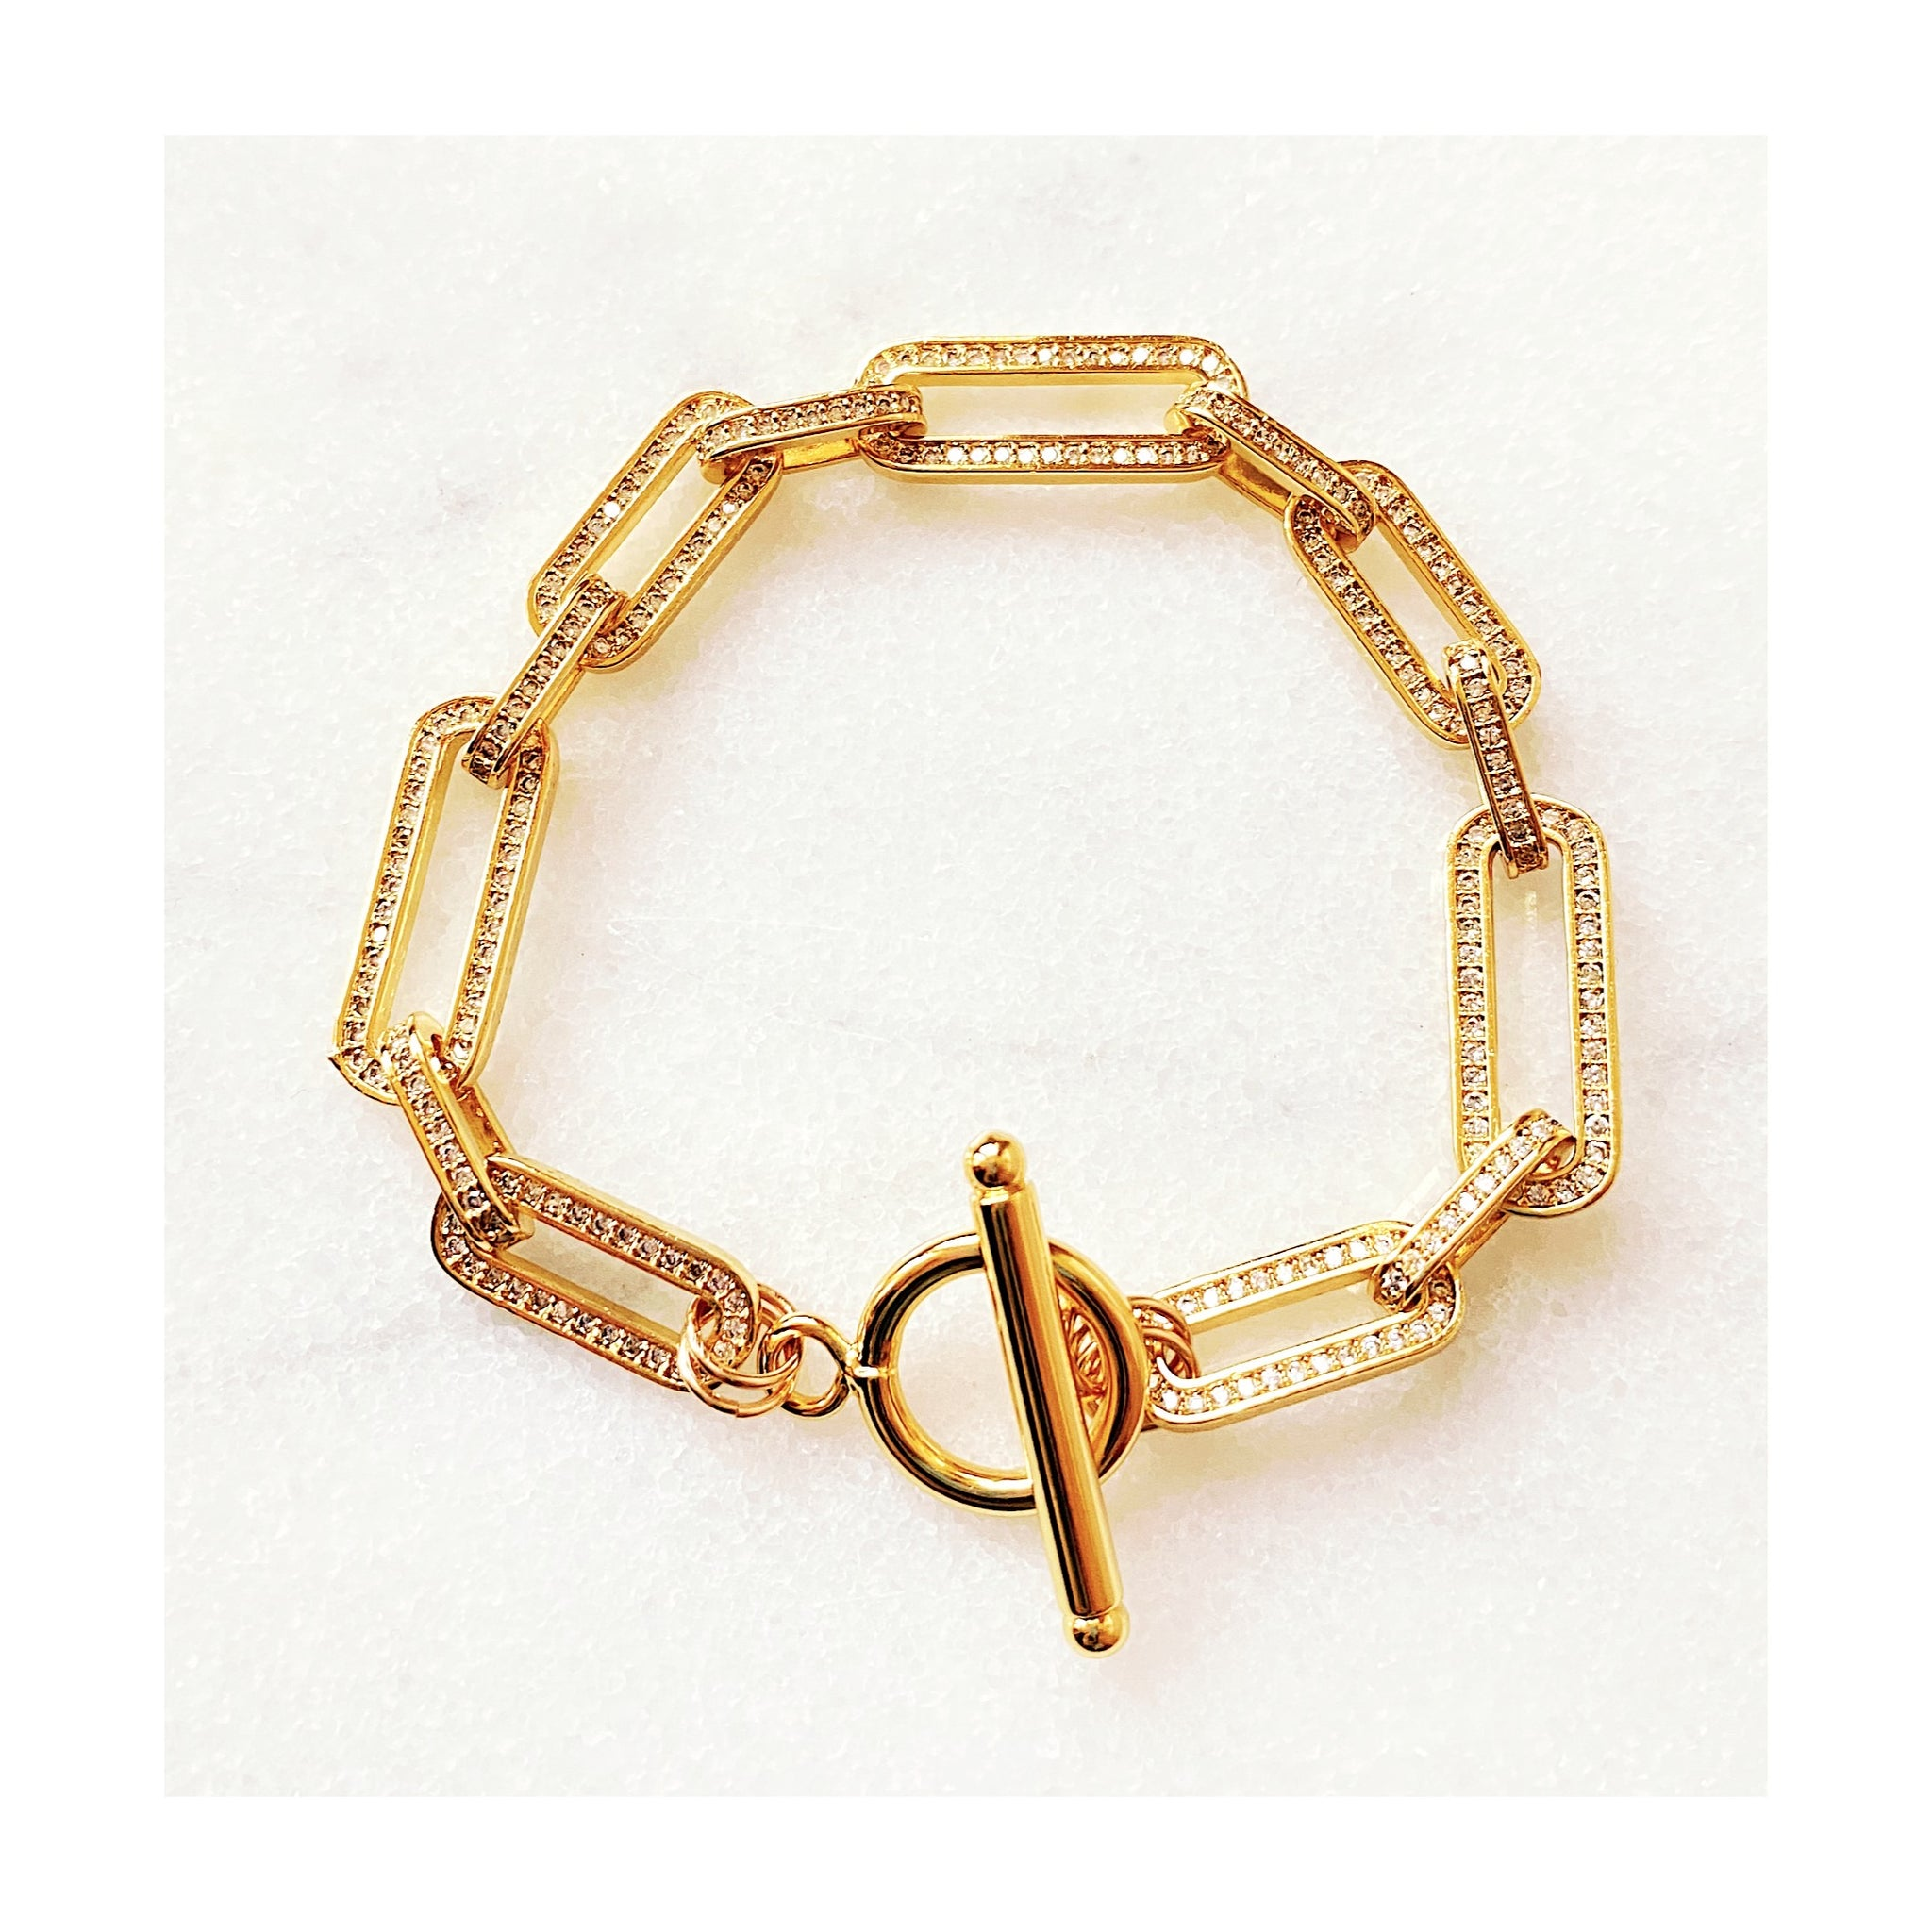 Elizabeth Gold Filled Pave Bracelet